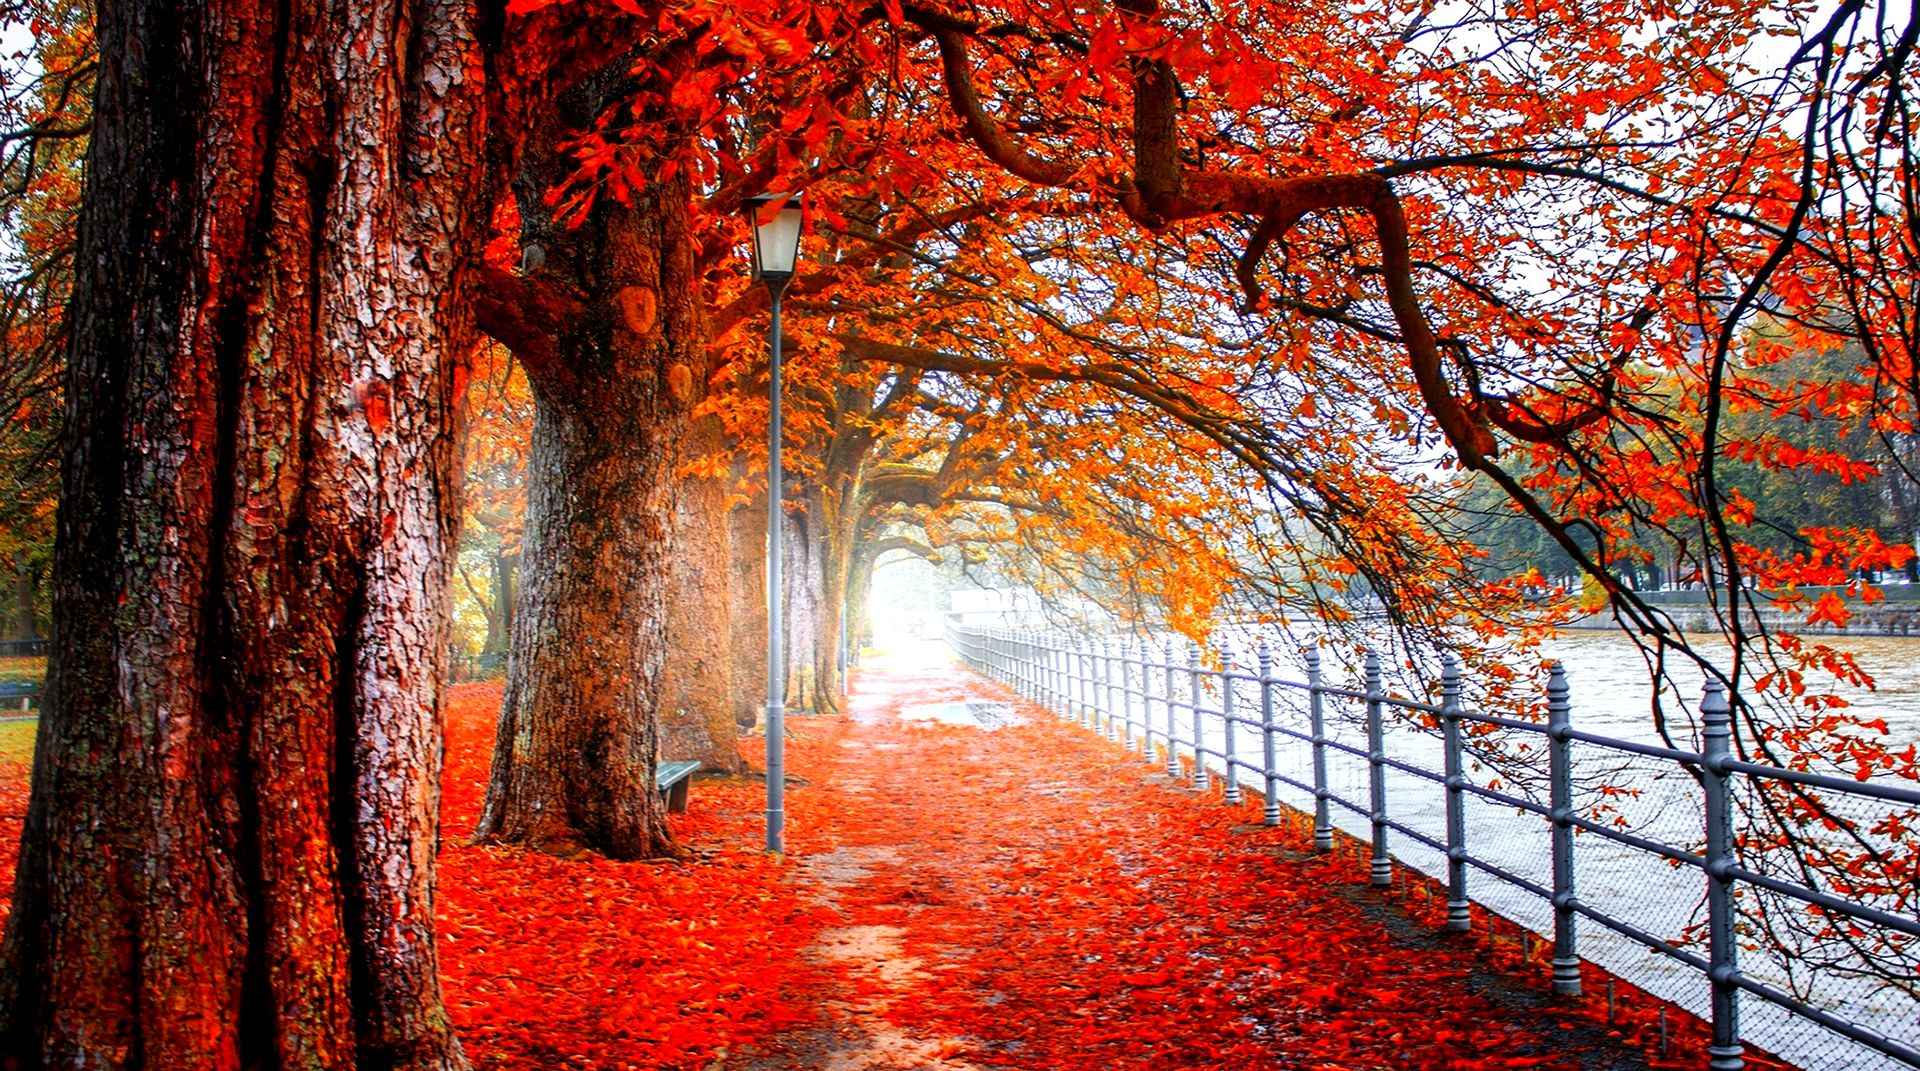 Red Tree 4k Wallpapers Anime Download HD Wallpaper 4 US